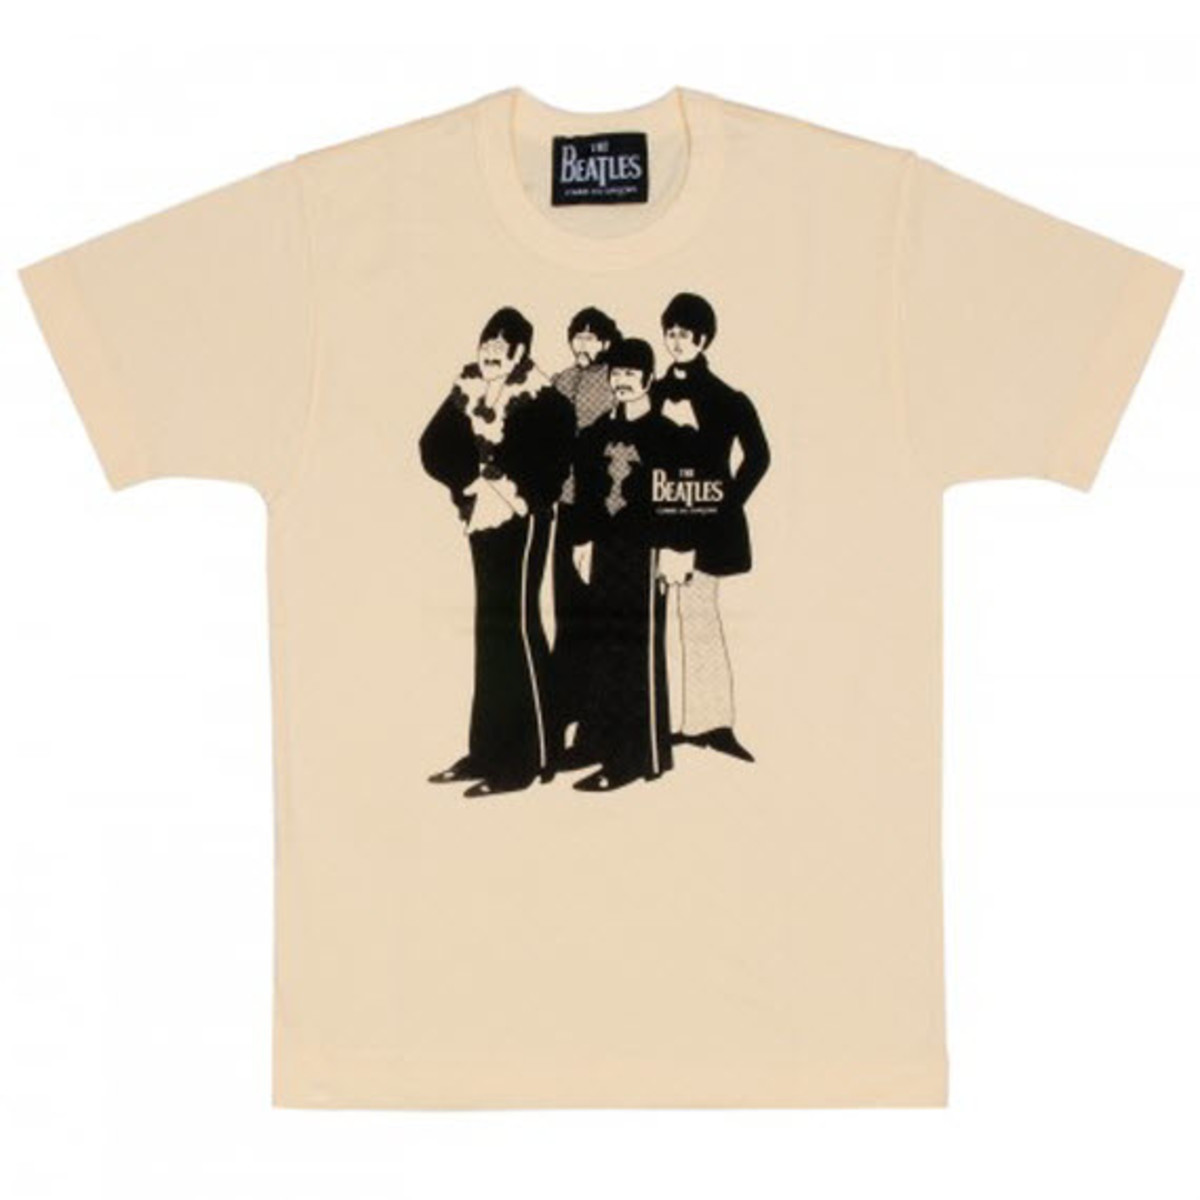 comme-des-garcons-x-the-beatles-the-beatles-springsummer-2013-capsule-collection-9